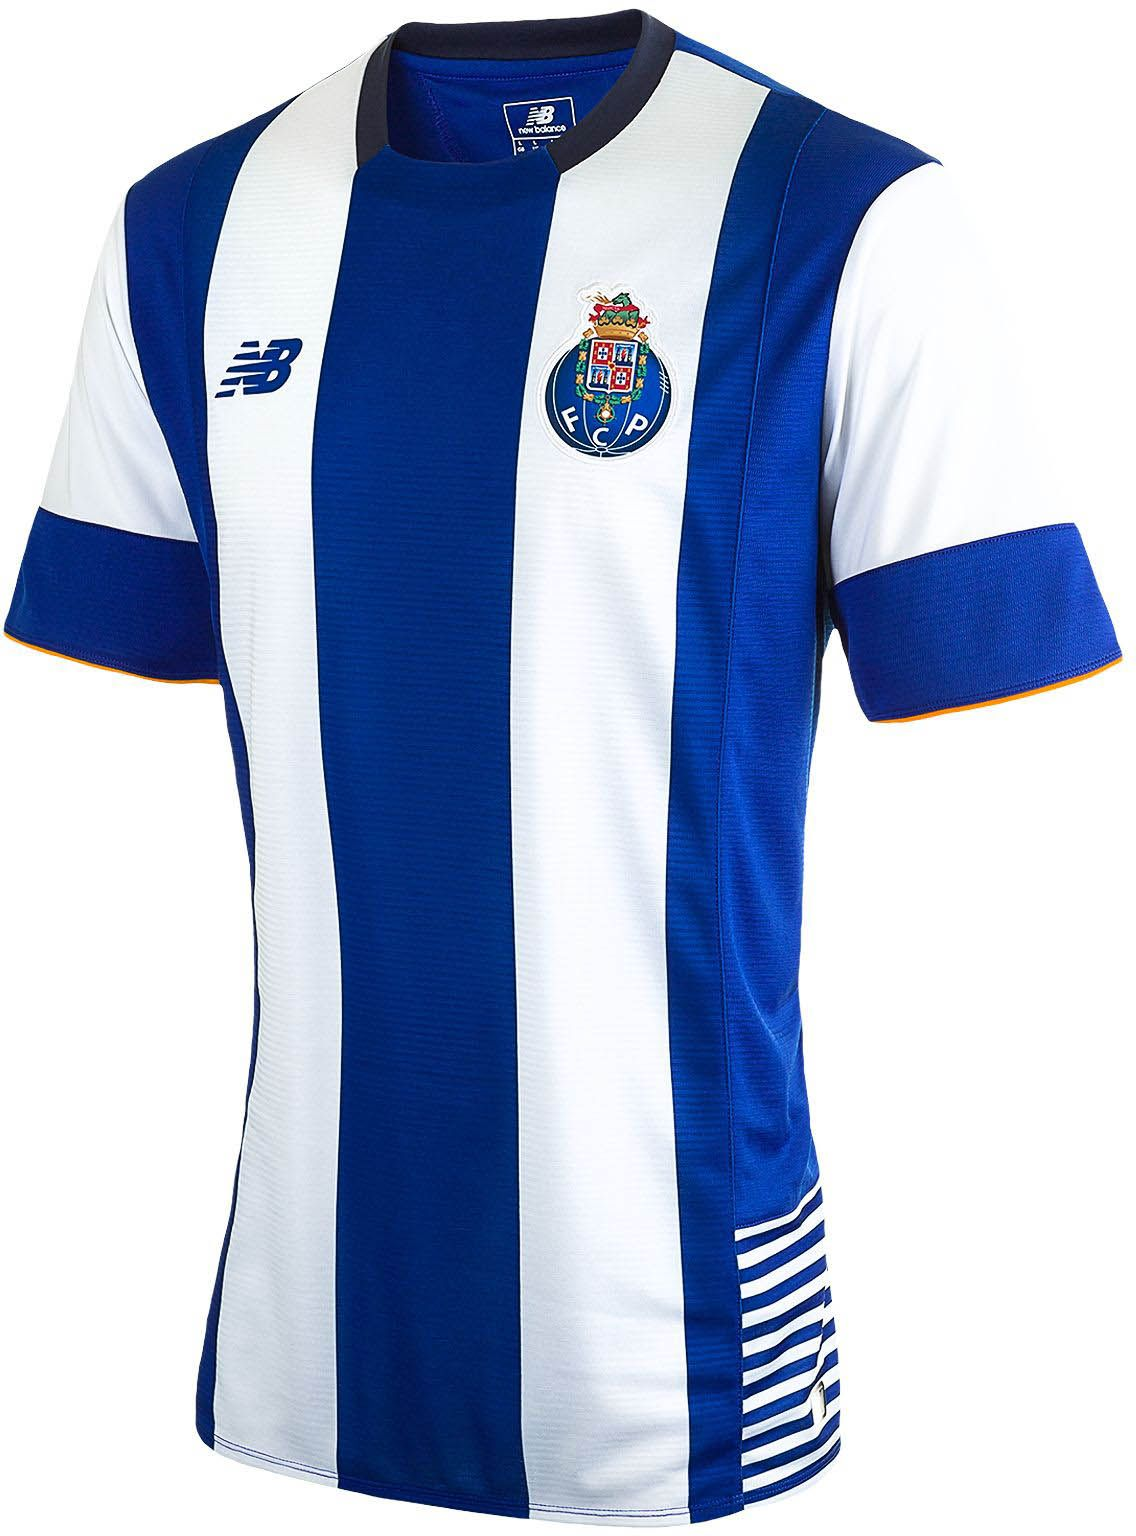 982281bab New Balance FC Porto 15-16 Kits Revealed - Footy Headlines ...